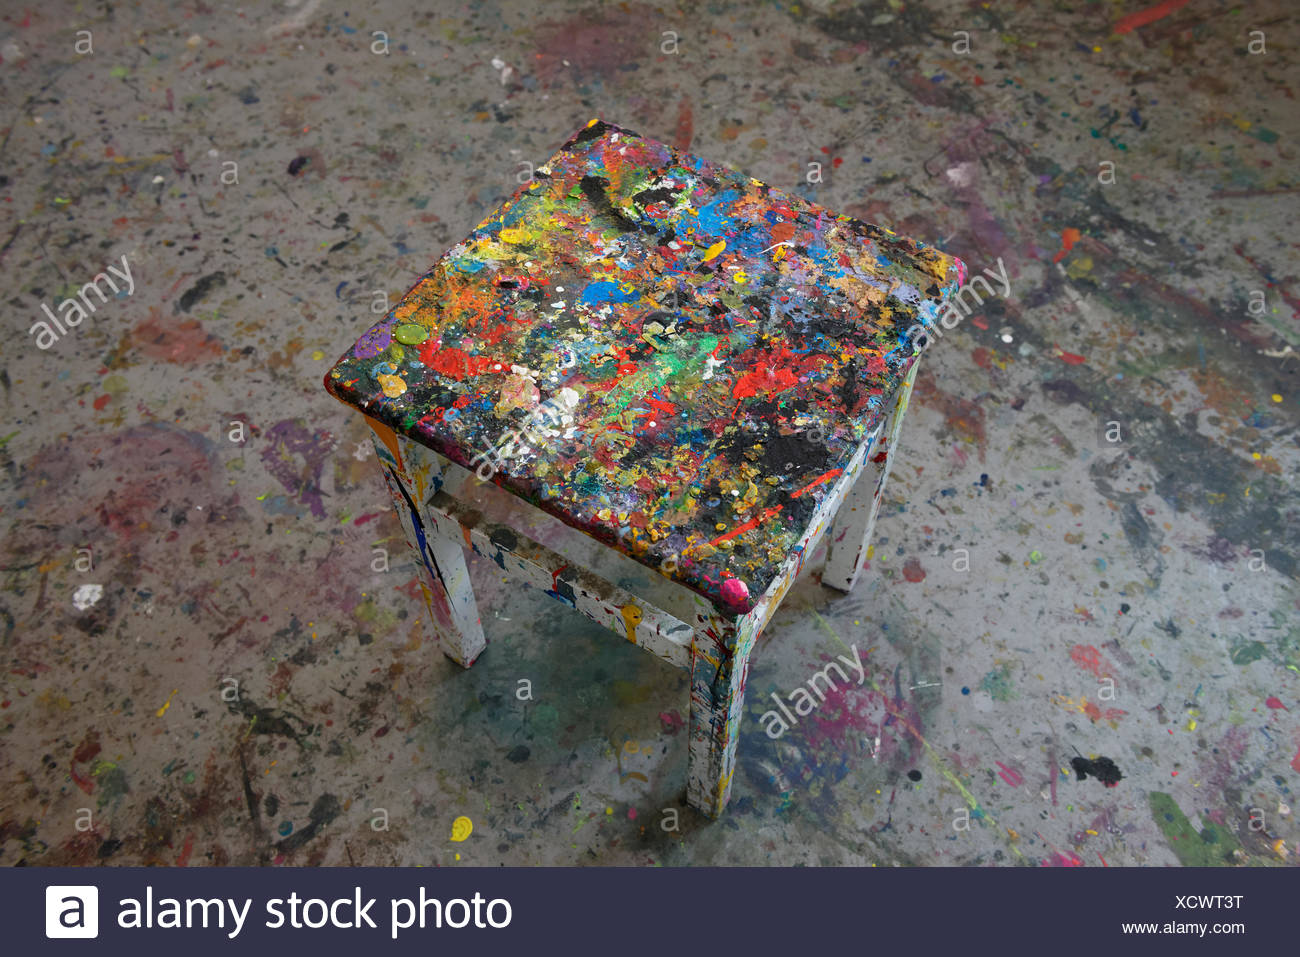 Footstool with colorful paint residues in a studio, Germany - Stock Image